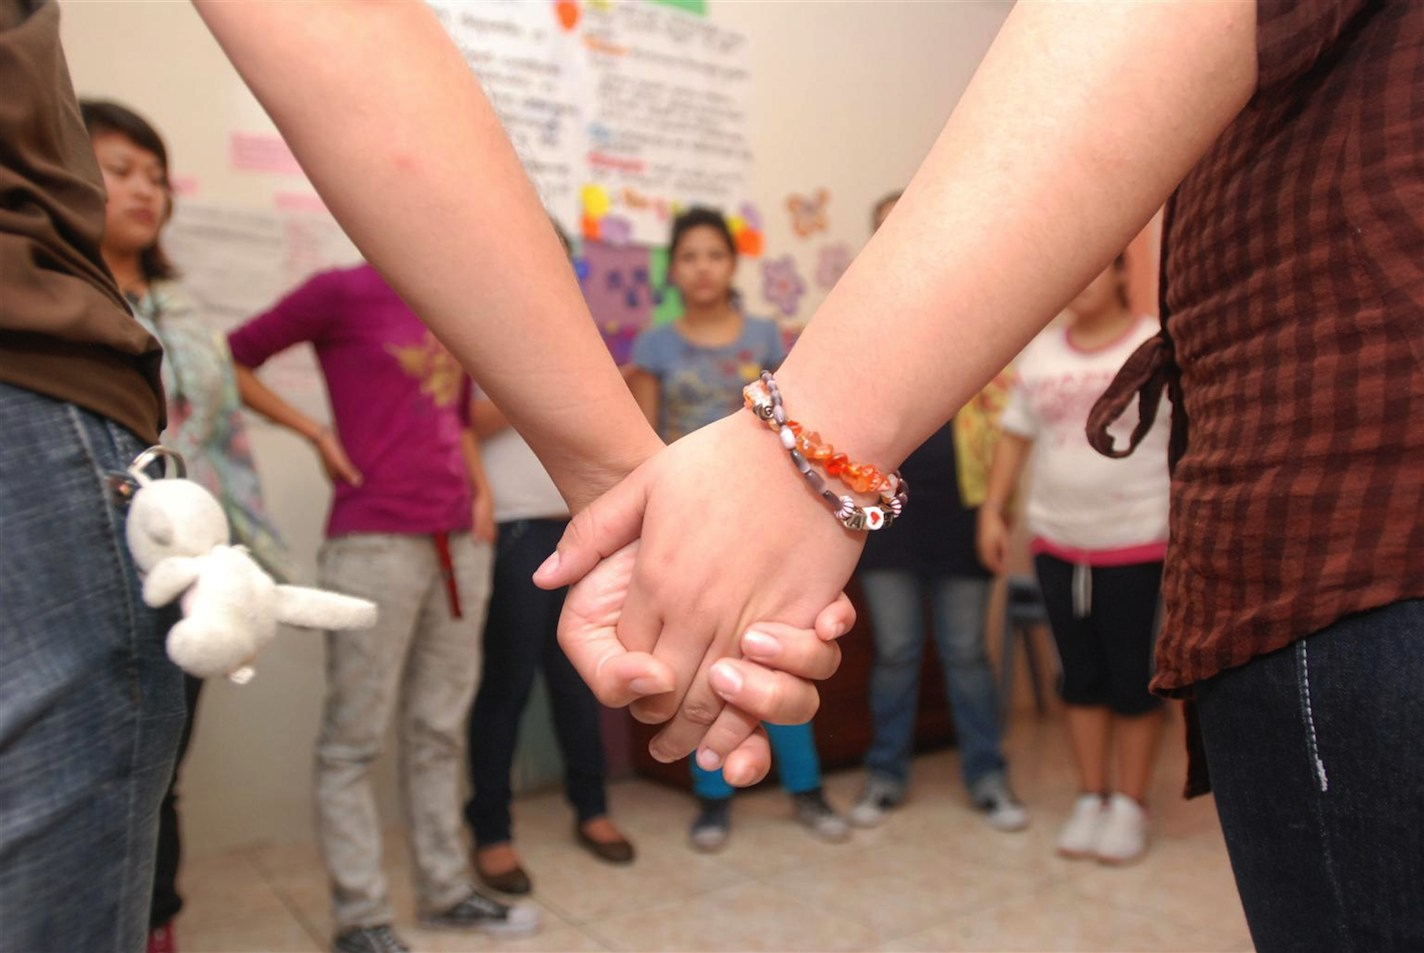 Teen girls hold hands during an activity at a UNICEF-supported children's shelter in Guatemala